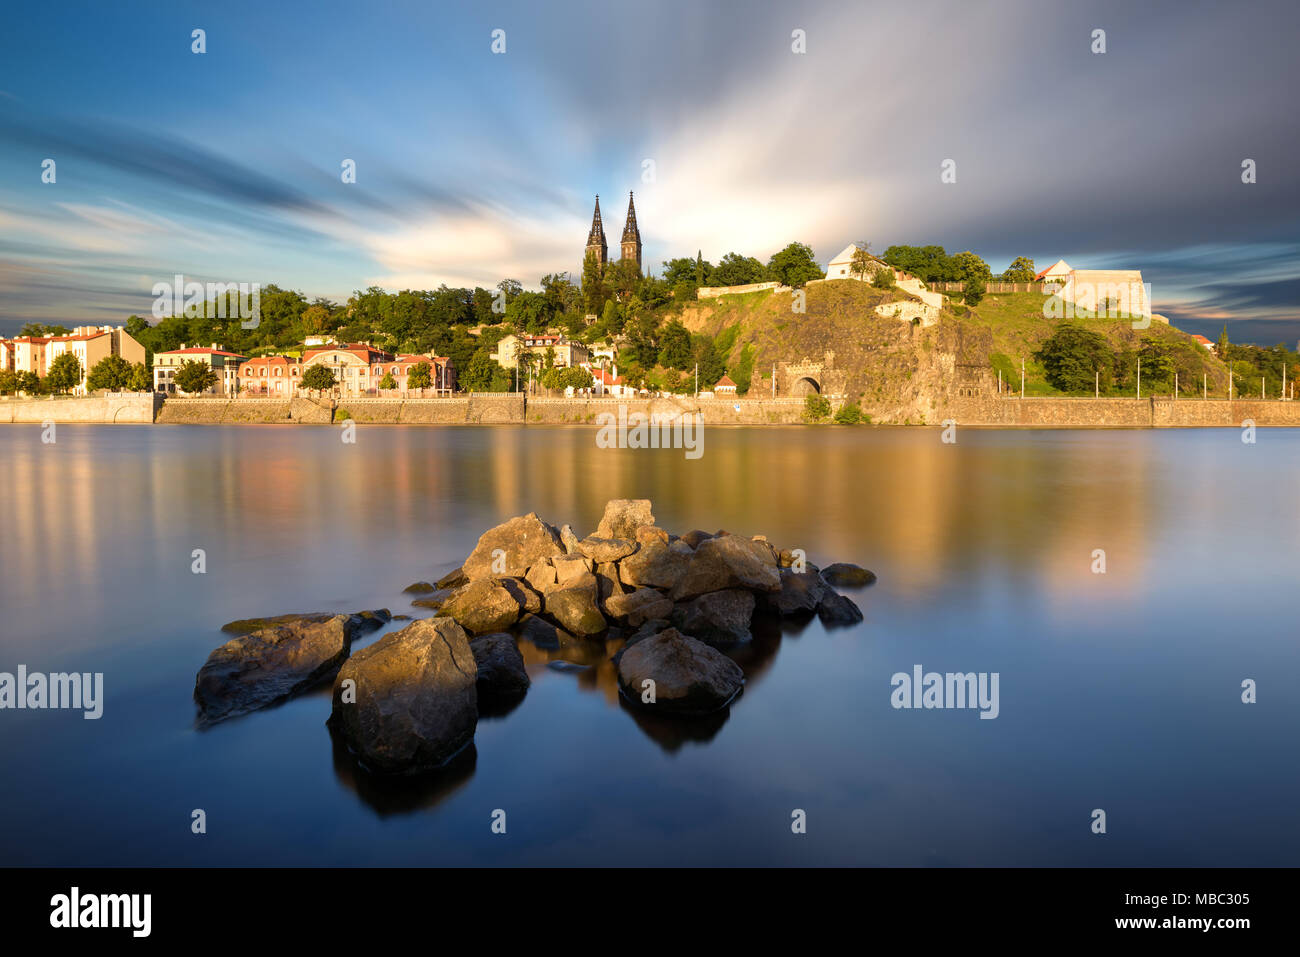 Famous Vysehrad church during sunny day. Amazing cloudy sky in motion. Hot summer season. Typical landscape reflection at Vltava river, Prague, Czech  - Stock Image